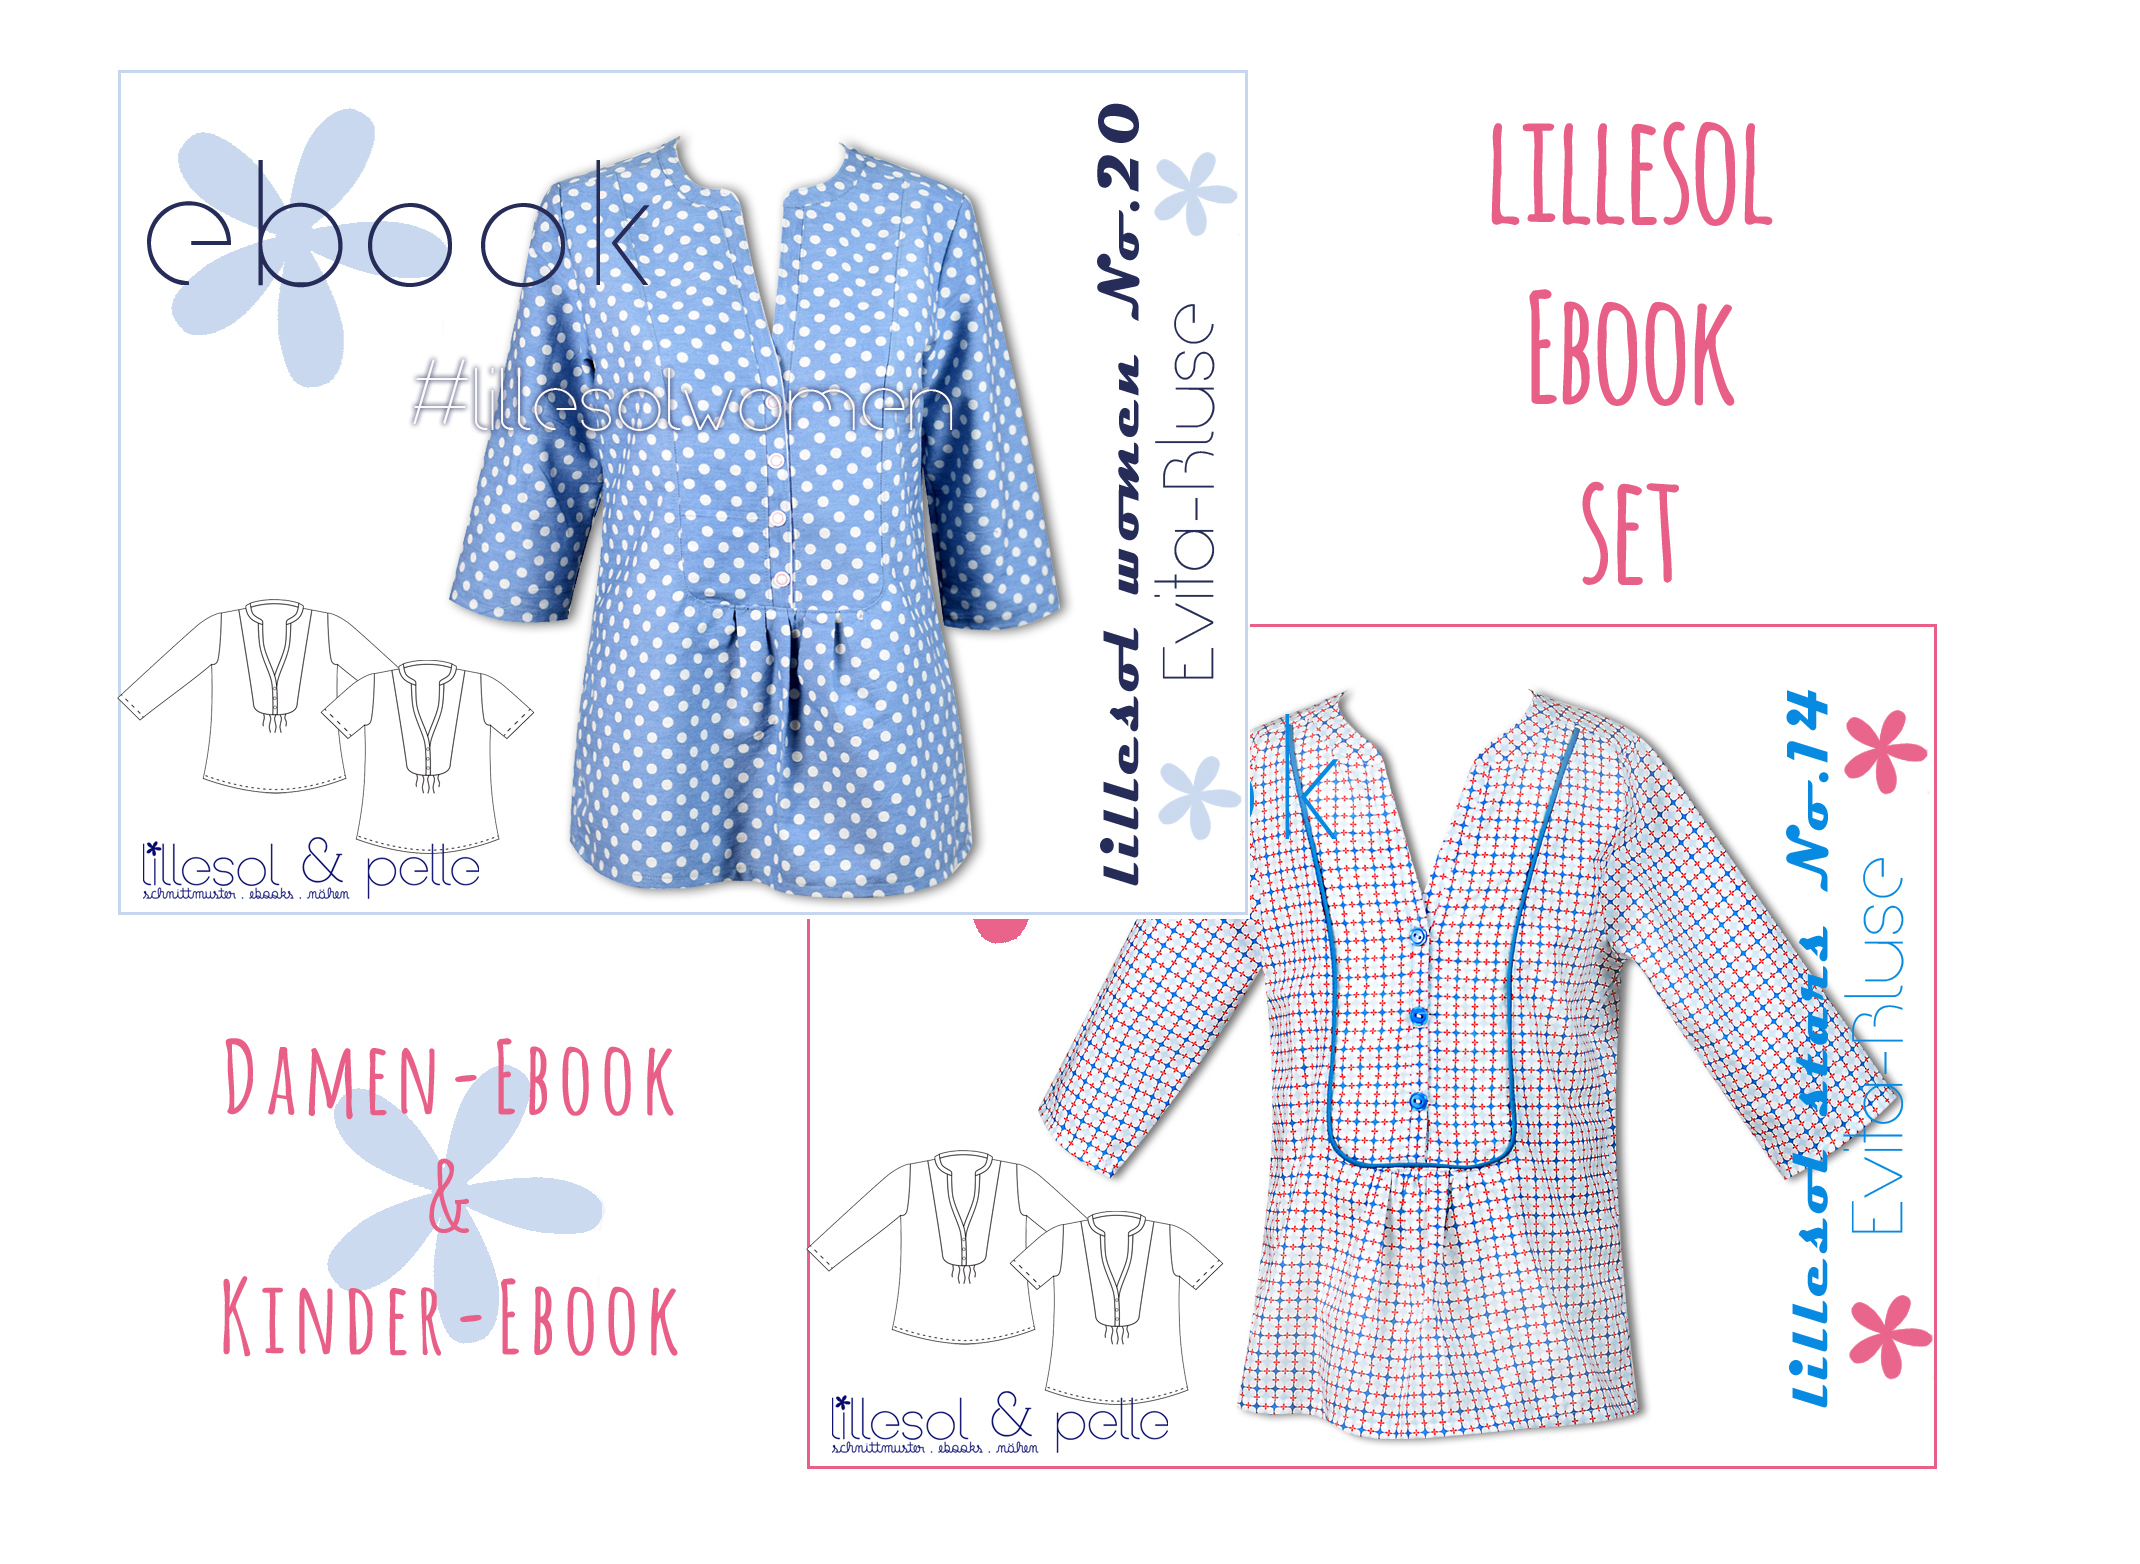 lillesol ebook set evita bluse Kopie